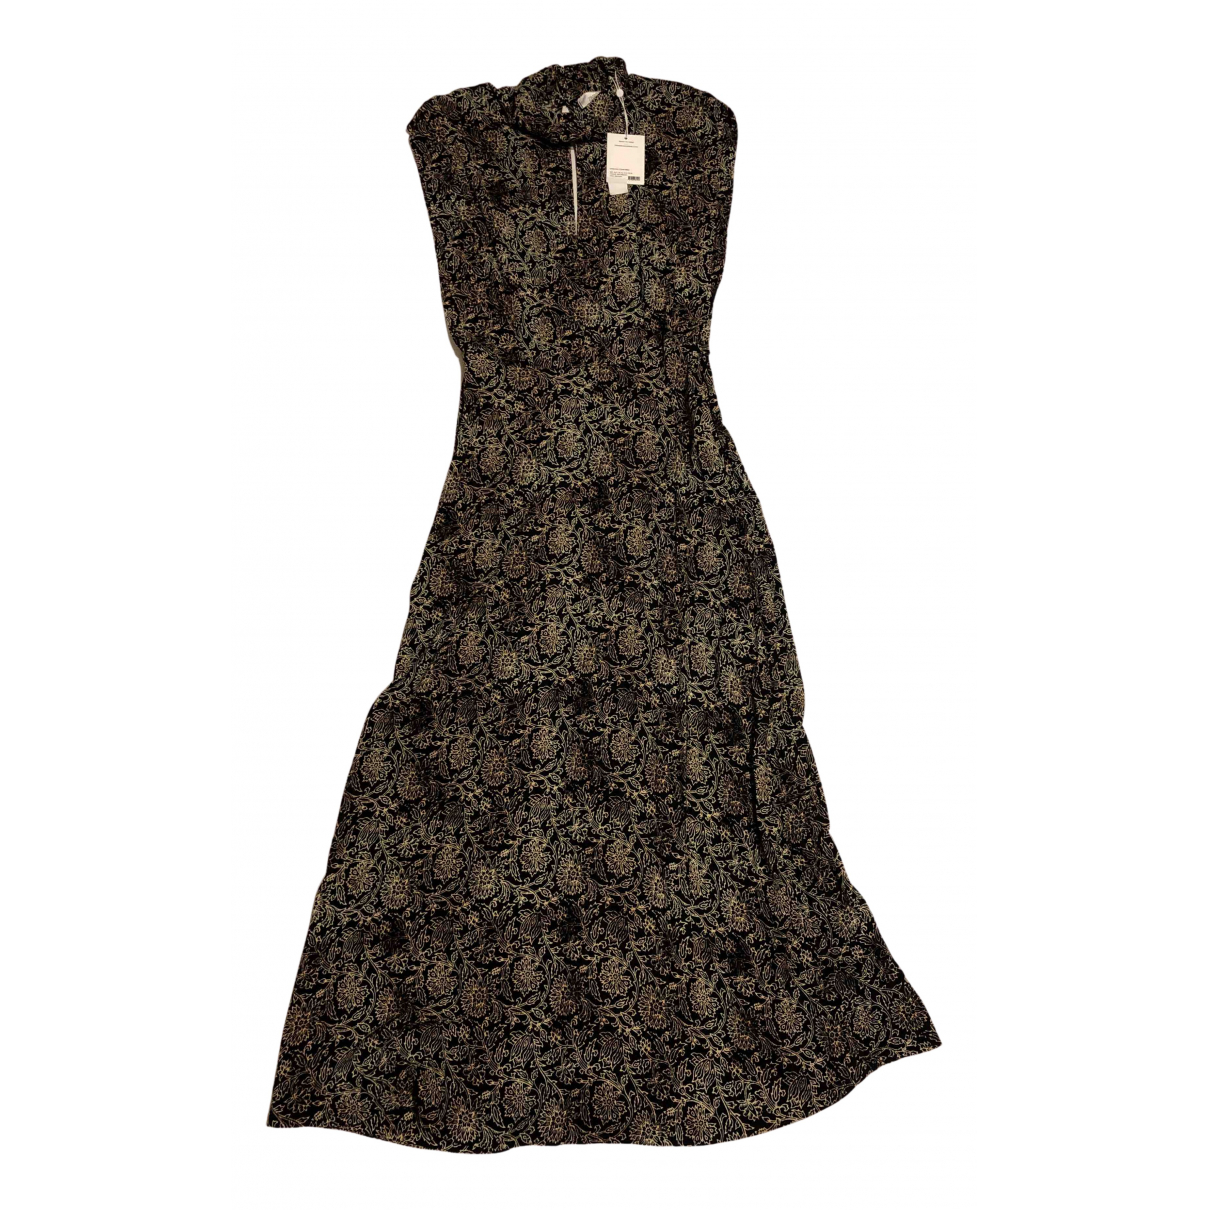 Zimmermann N Black dress for Women 8 UK